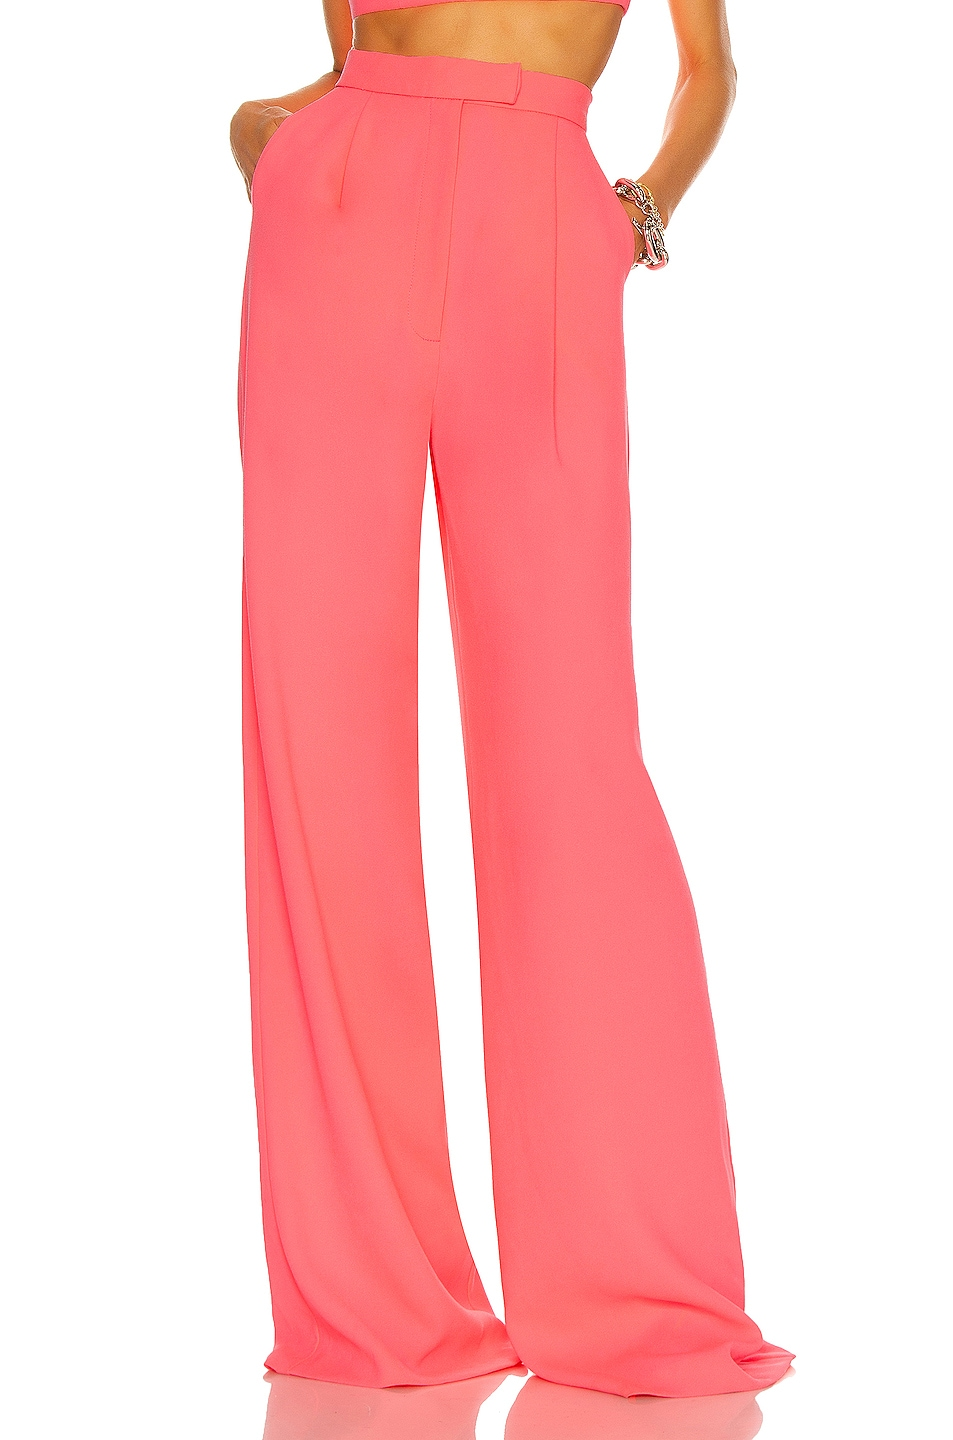 Image 1 of Alex Perry Hale Pant in Neon Pink